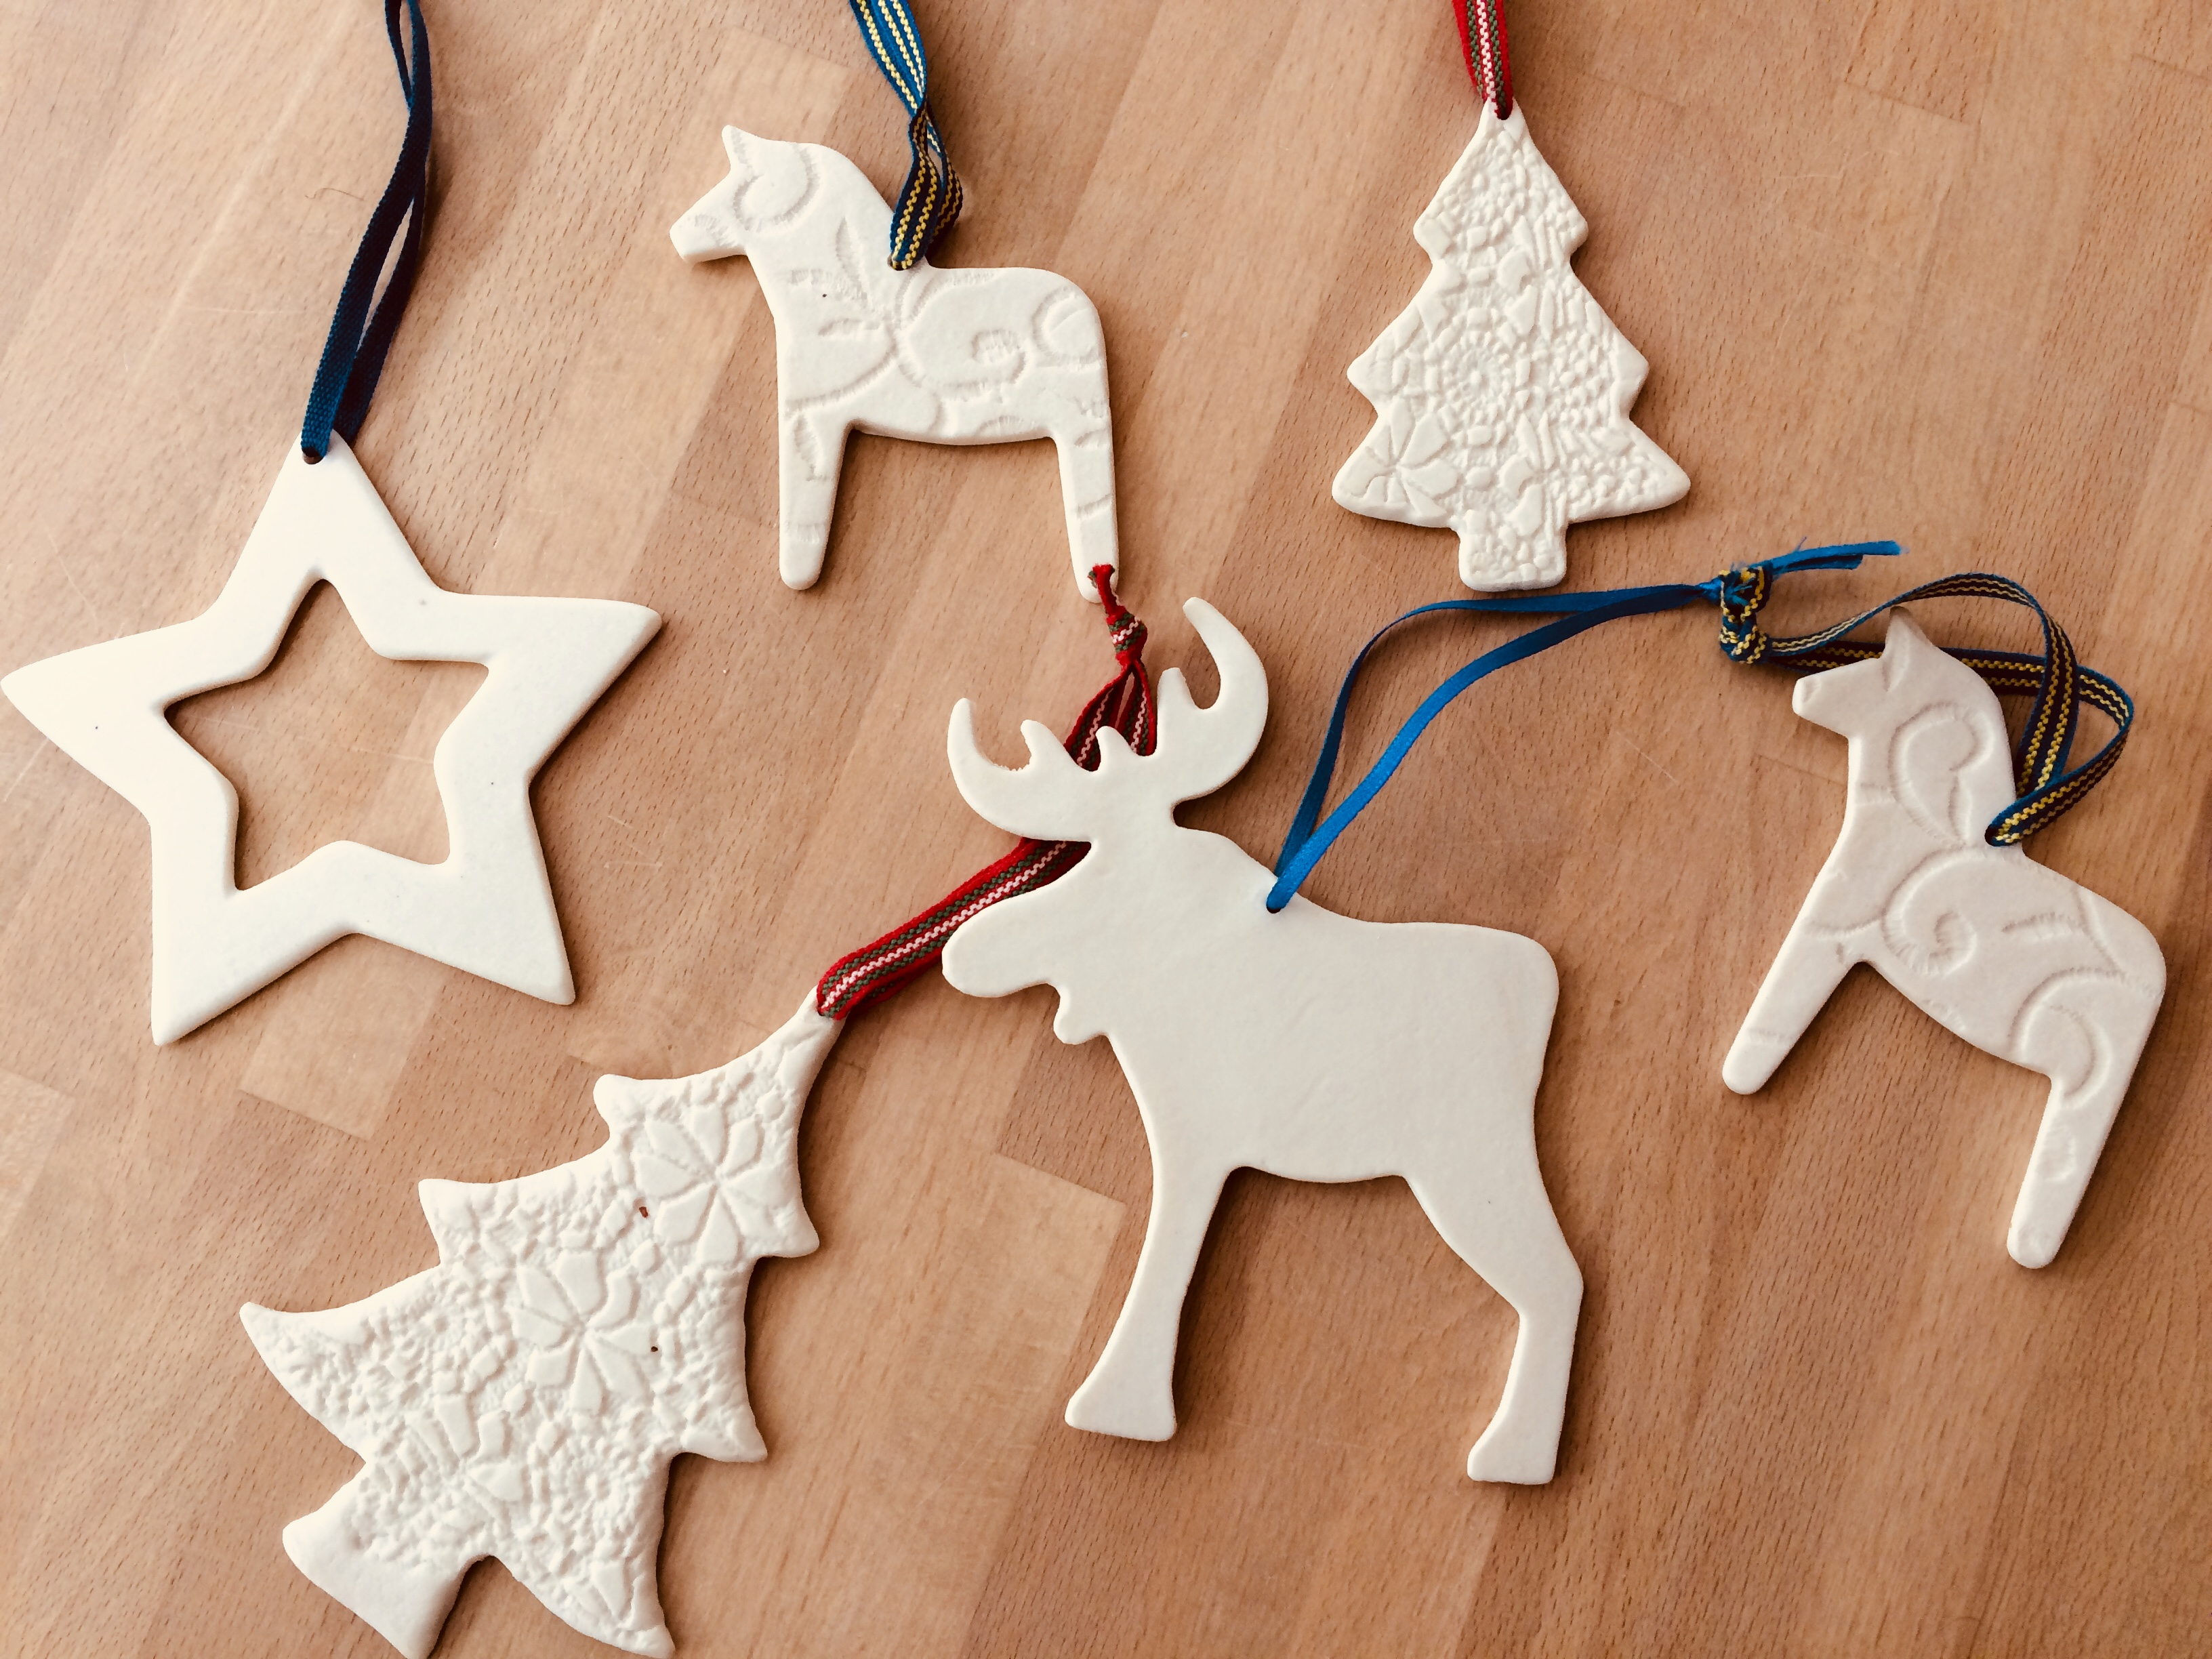 Make your own porcelain Christmas tree decorations & gift vouchers